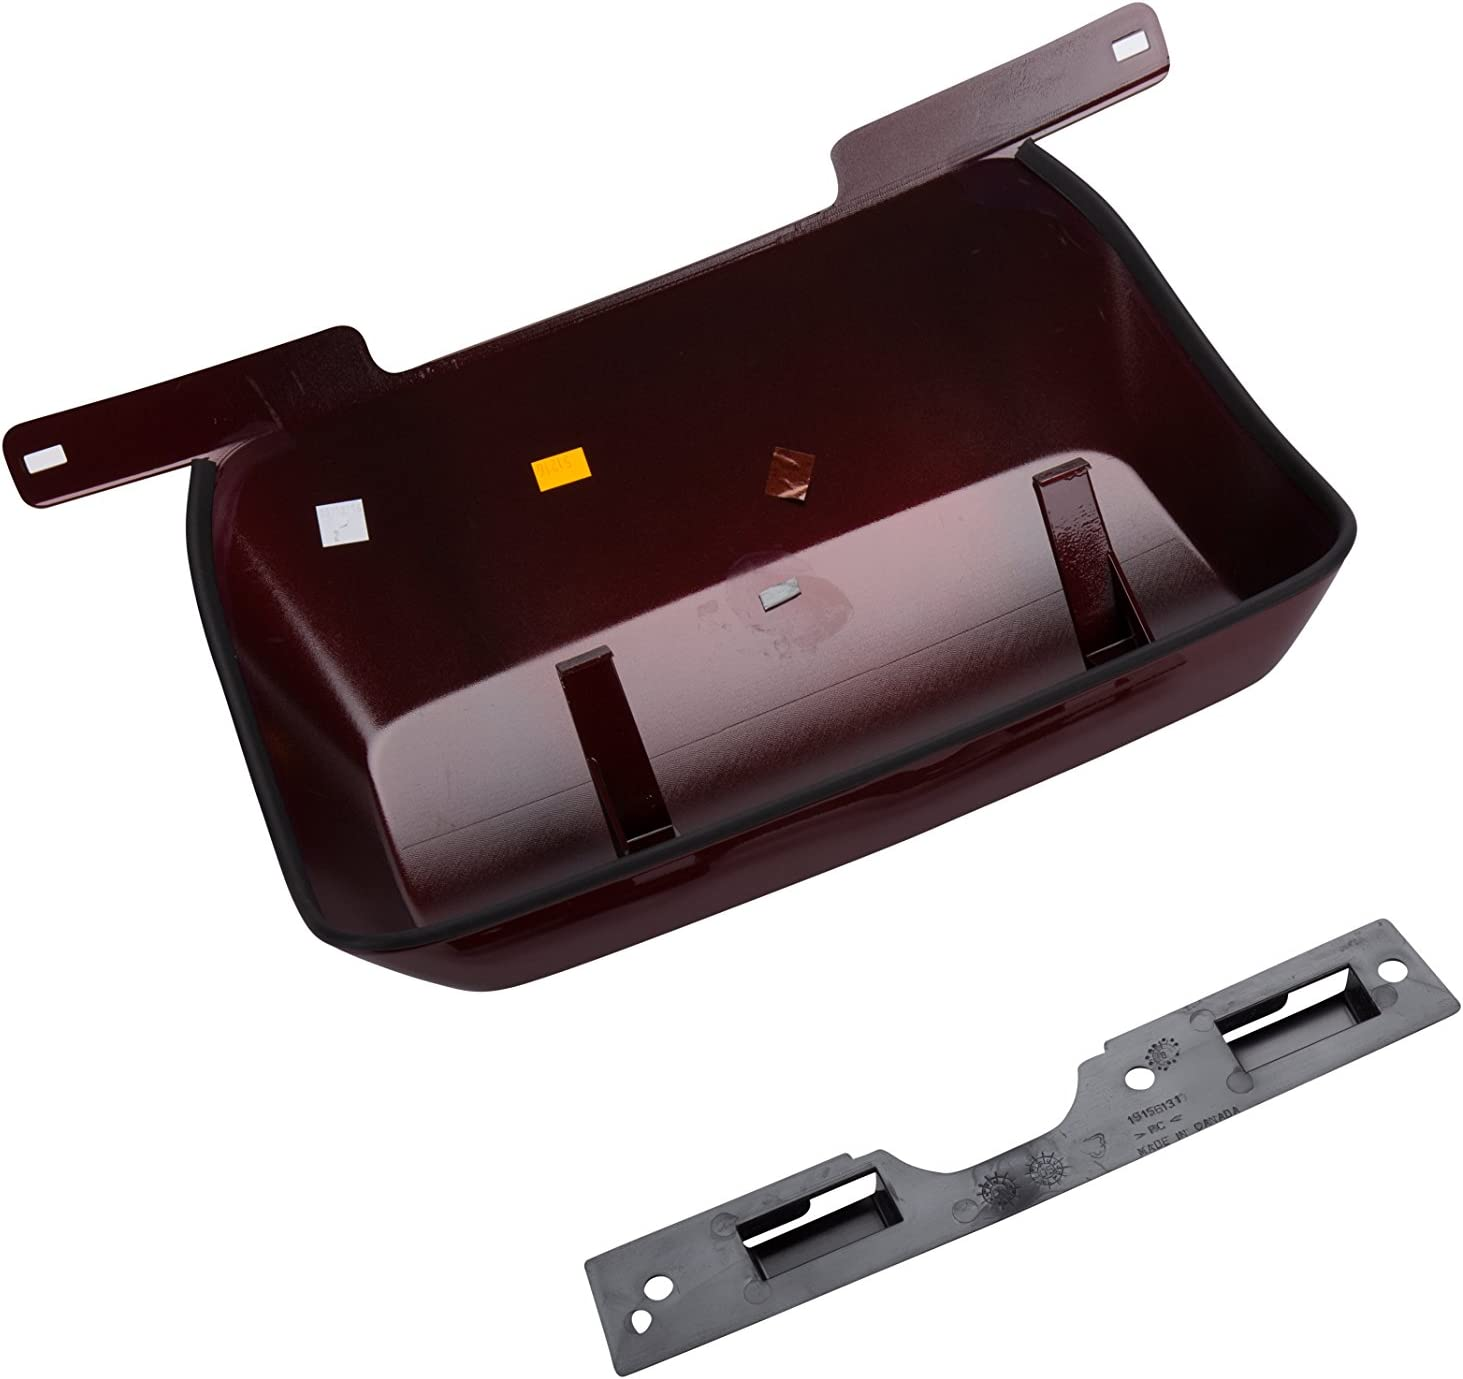 GM Accessories 19243782 Trailer Hitch Closeout in Jewel Red General Motors